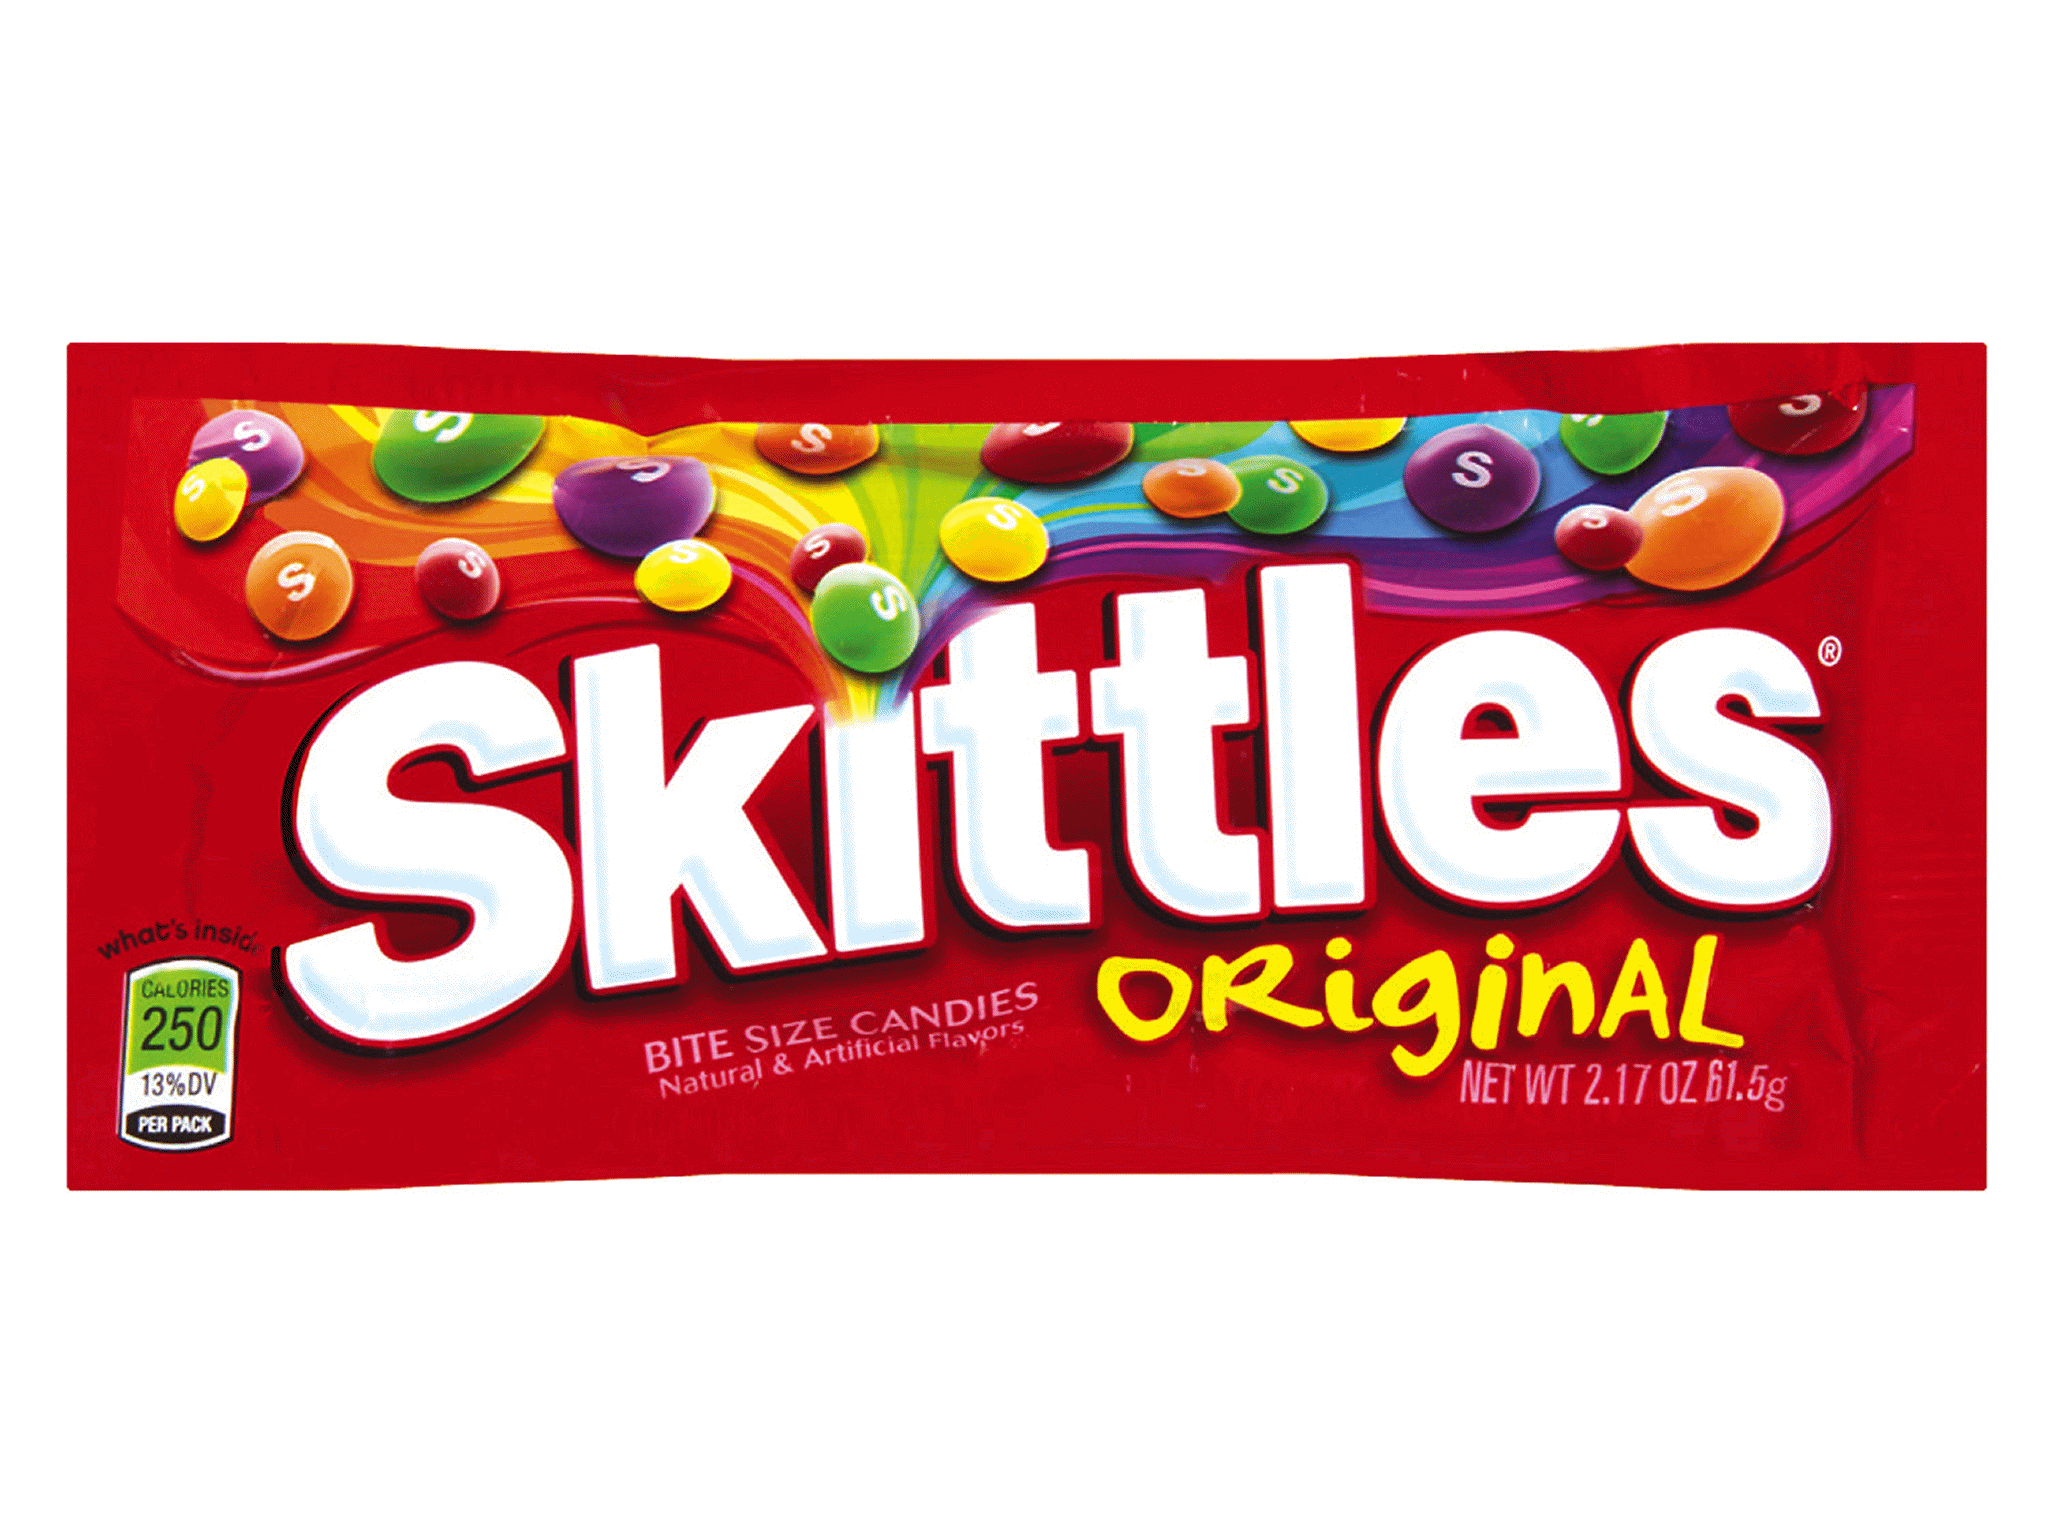 Skittles Bag Png - PNG Skittles Transparent Skittles.PNG Images. | PlusPNG